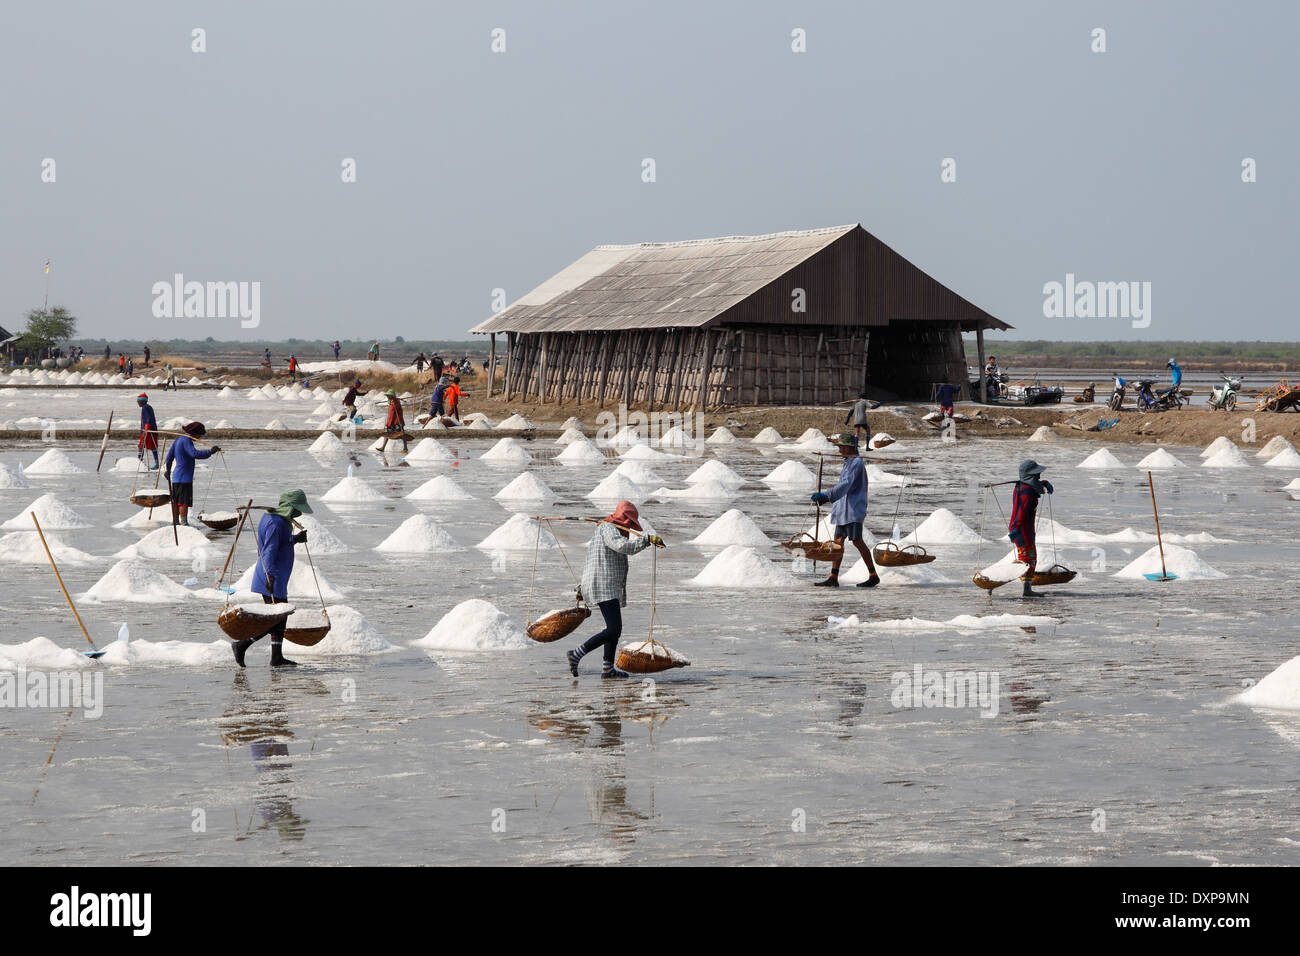 Workers in Thailand collect salt from a saltpan - Stock Image